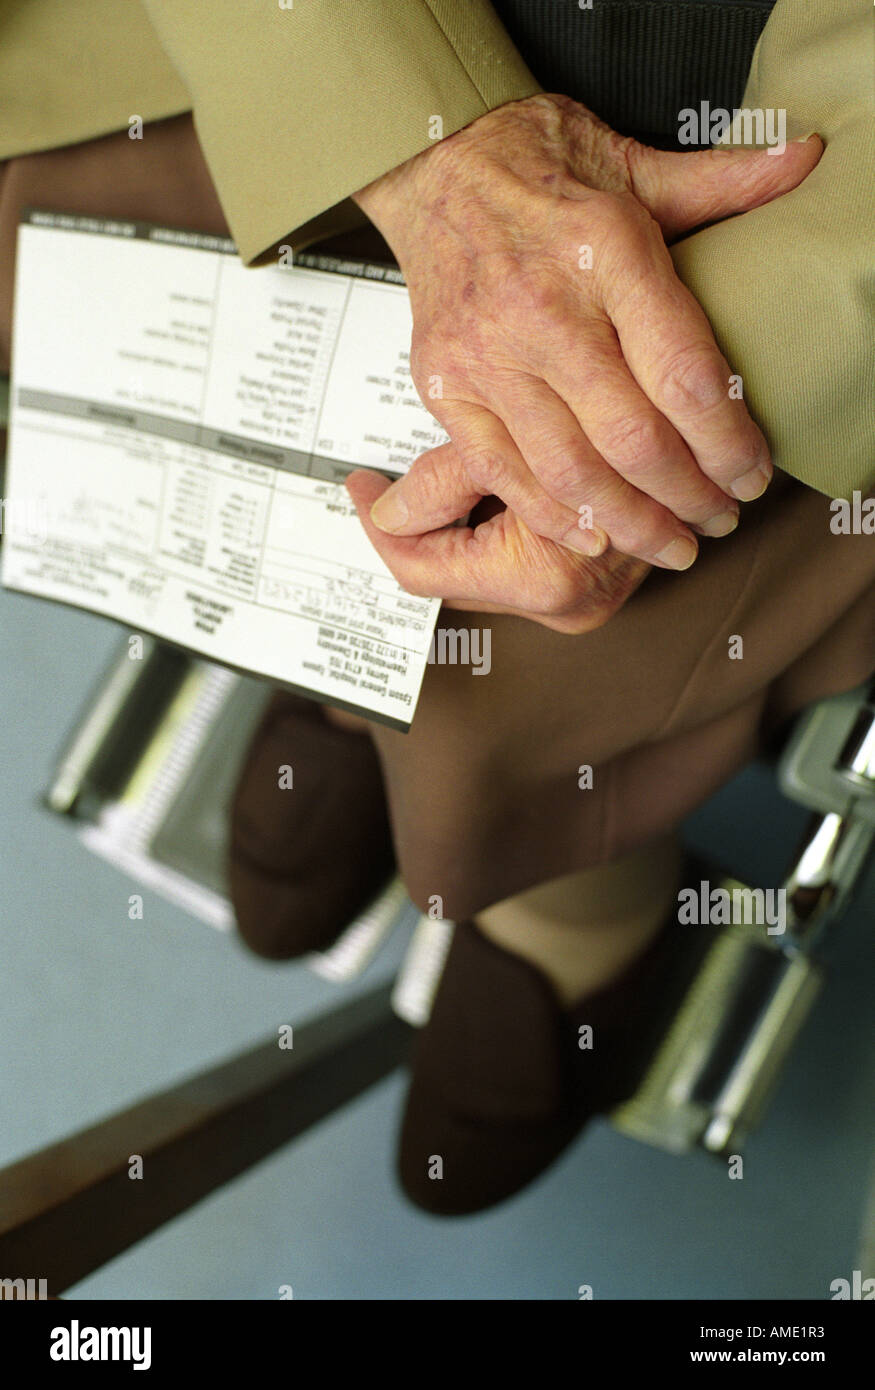 Hands of an elderly patient sitting in a wheelchair holding medical records, health centre, London, UK. - Stock Image